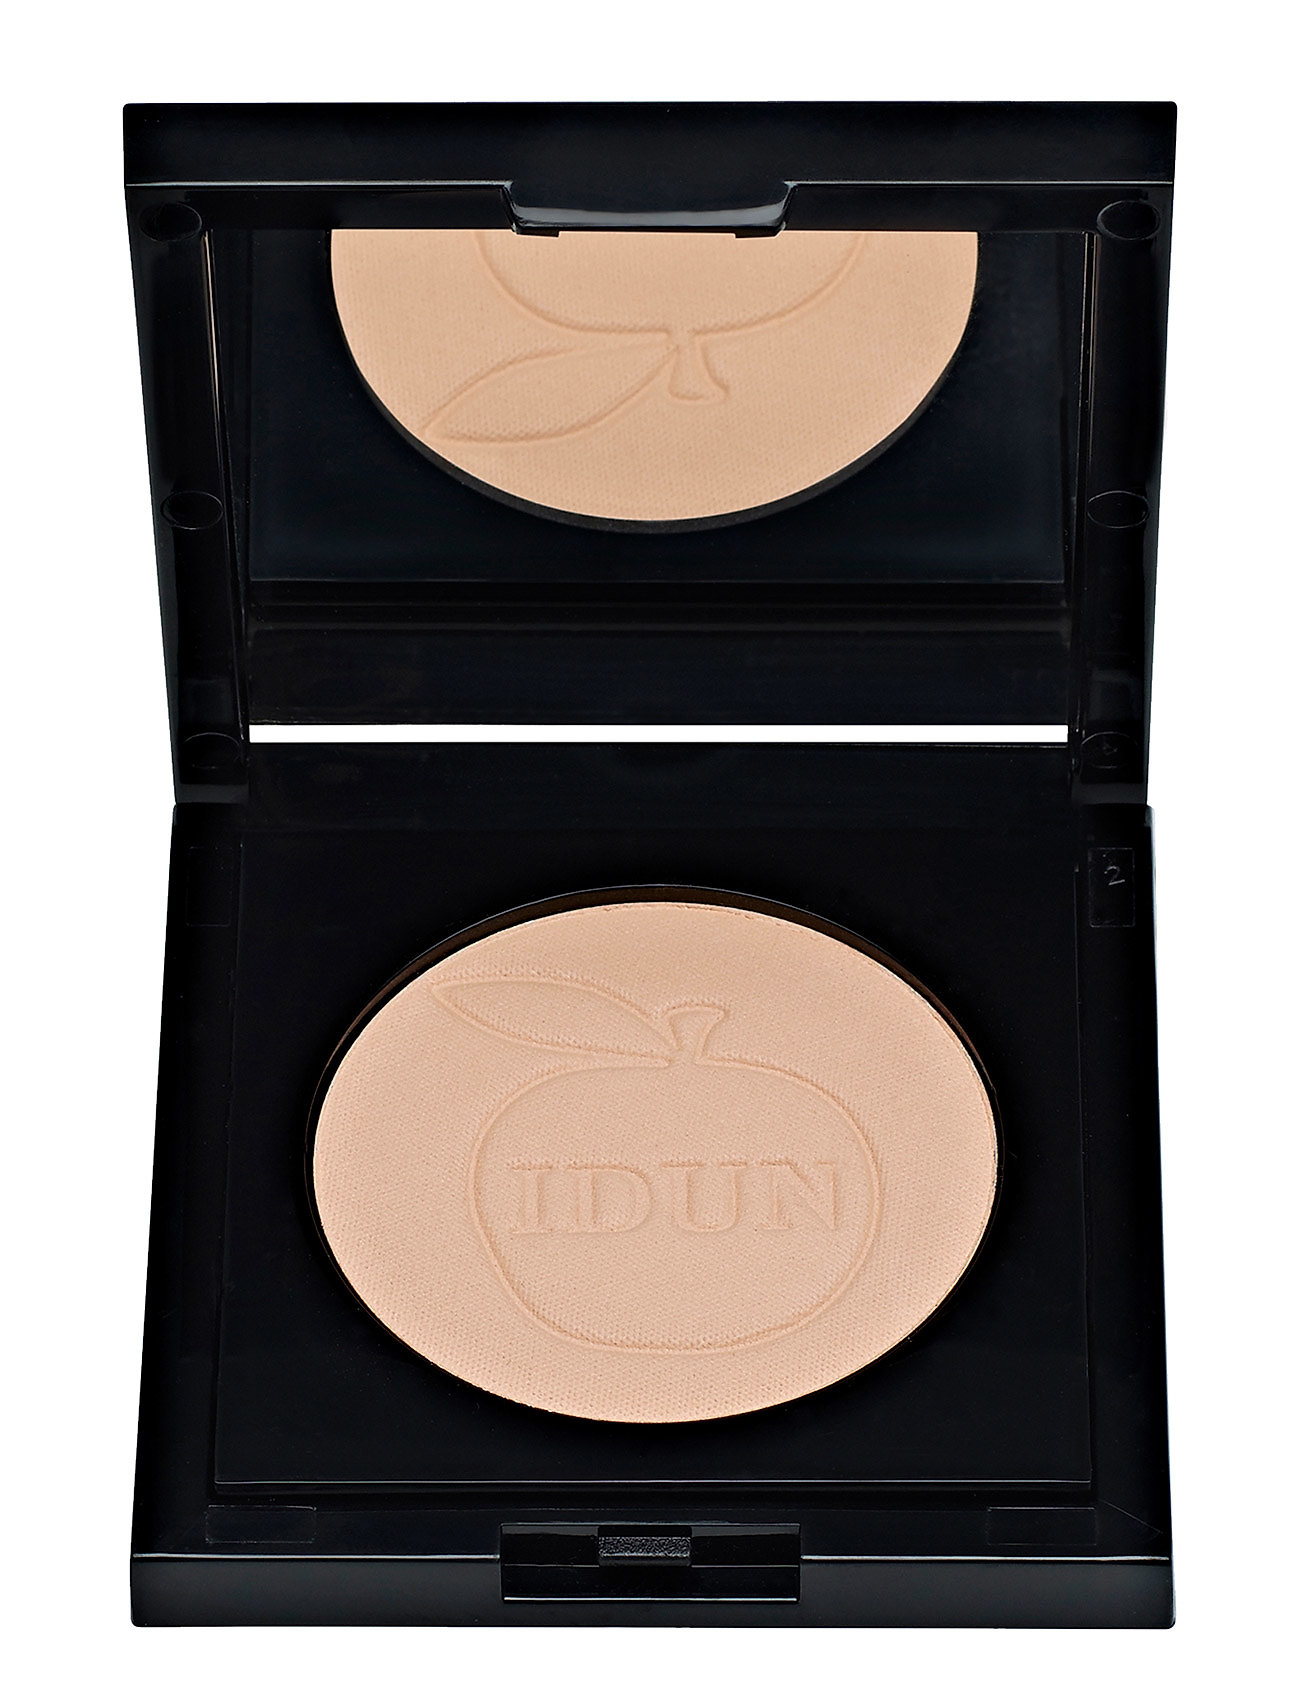 IDUN Minerals Powder Vacker - LIGHT WARM